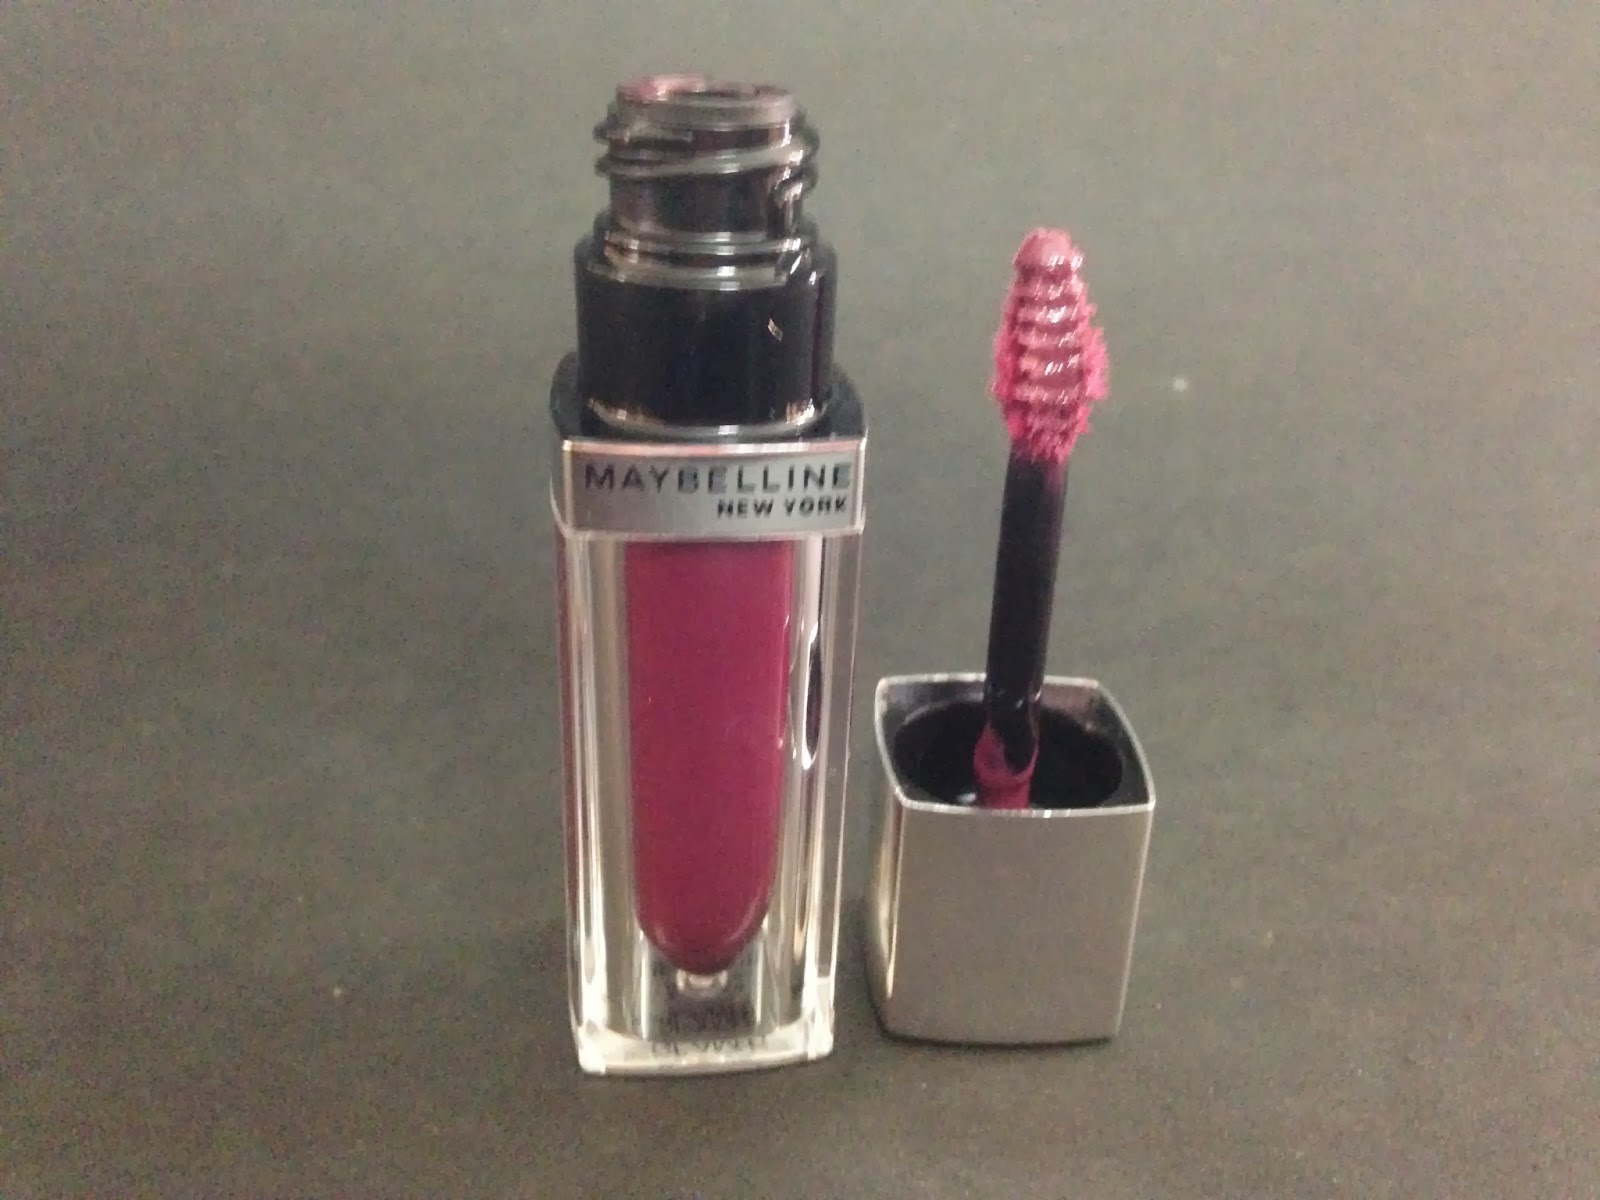 Maybelline Lip Polish in Glam6